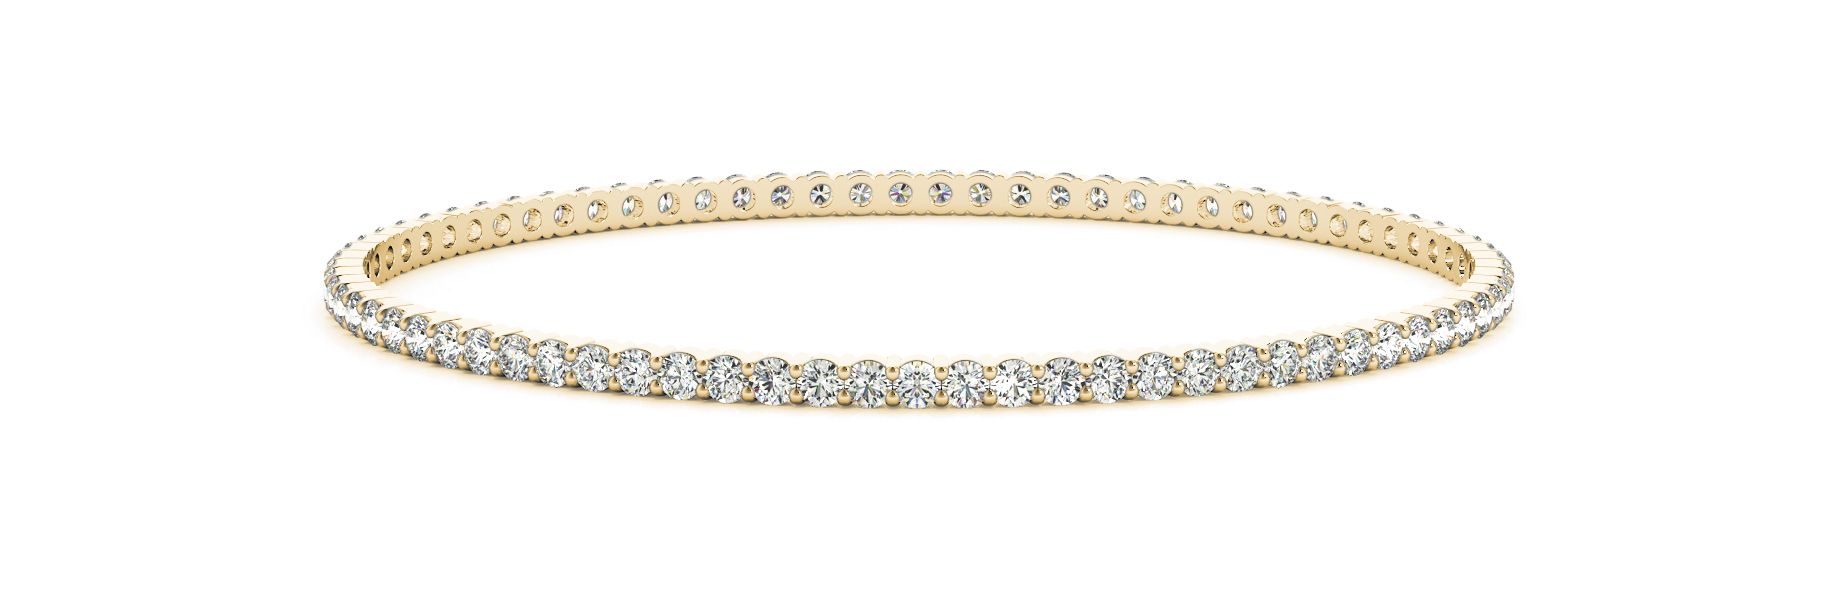 2.45 Carat Round Diamond Eternity Bangle in Yellow Gold